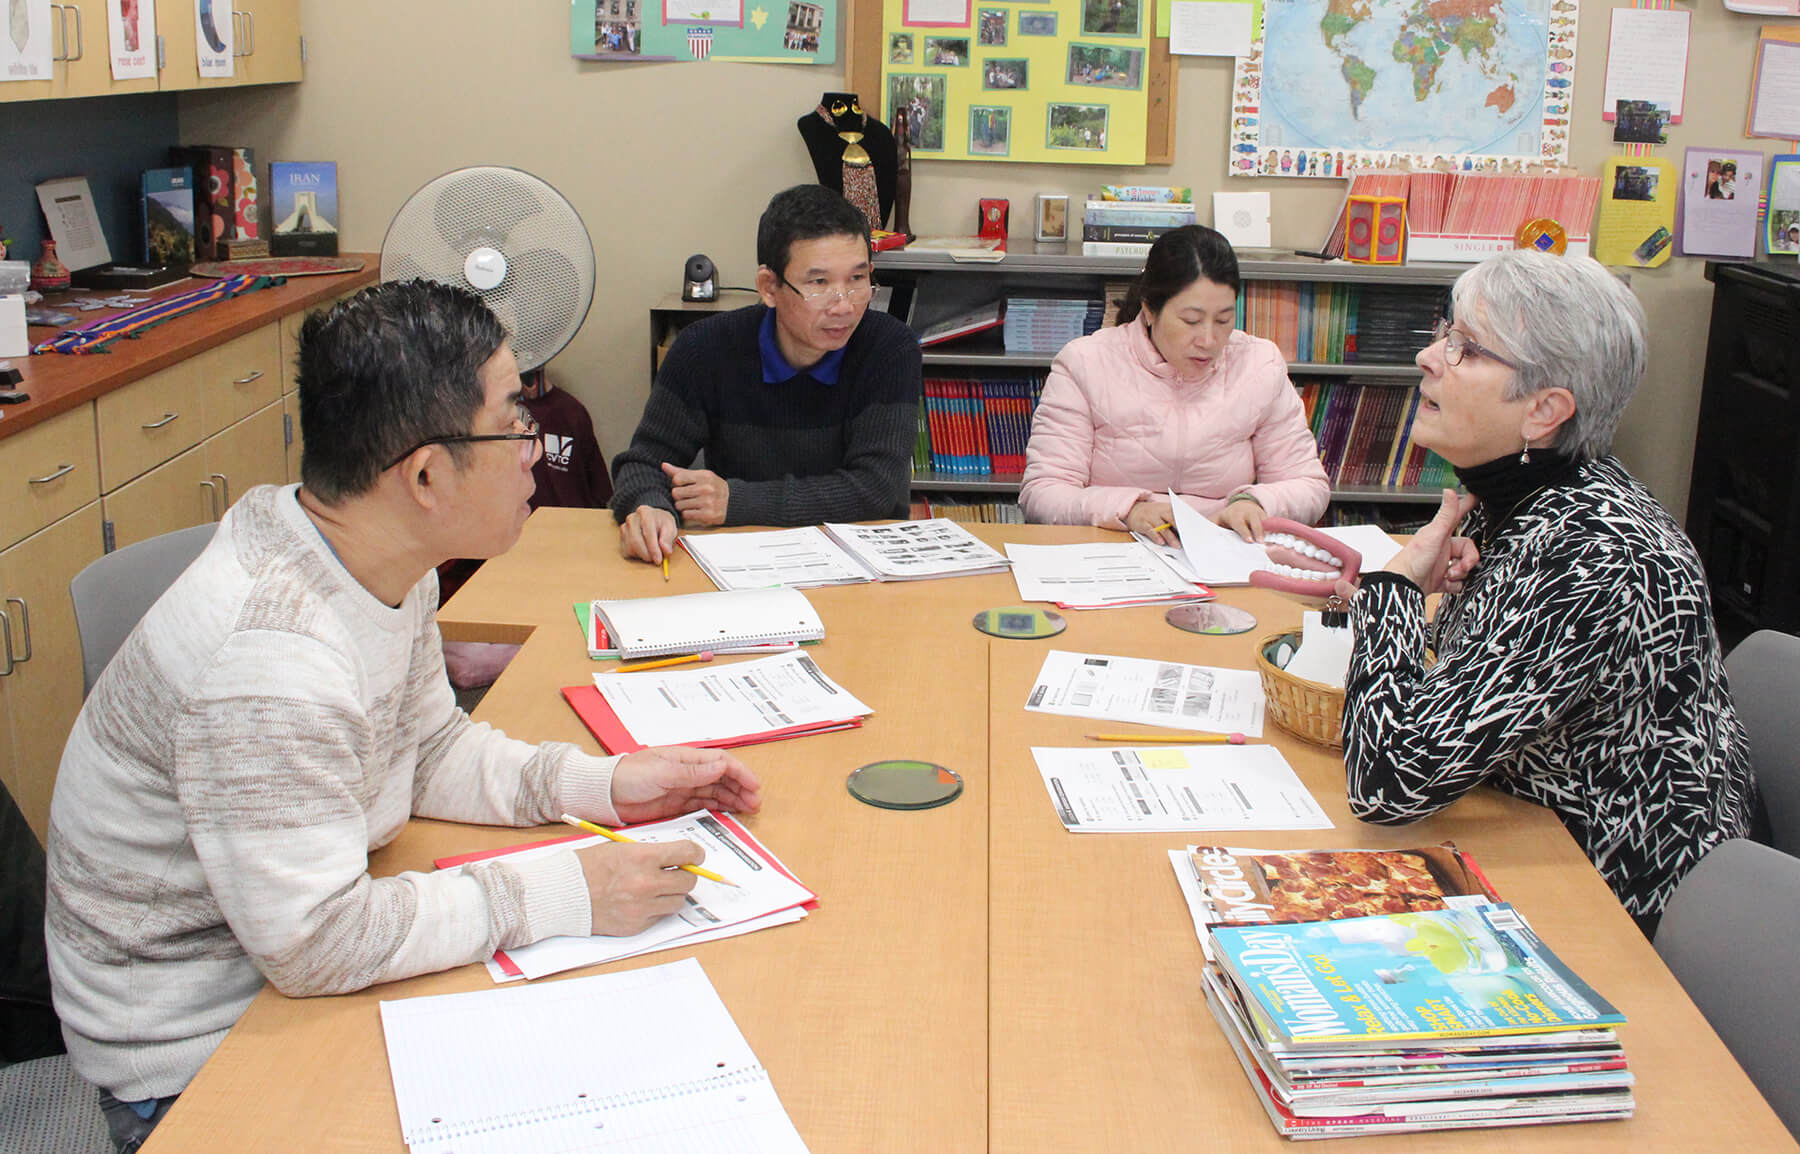 Juli Baker, right, works with students in the English Language Learner class at CVTC in this 2018 file photo. Many students who enter CVTC's ELL program first receive services from Literacy Chippewa Valley, which has a strong partnership with CVTC.